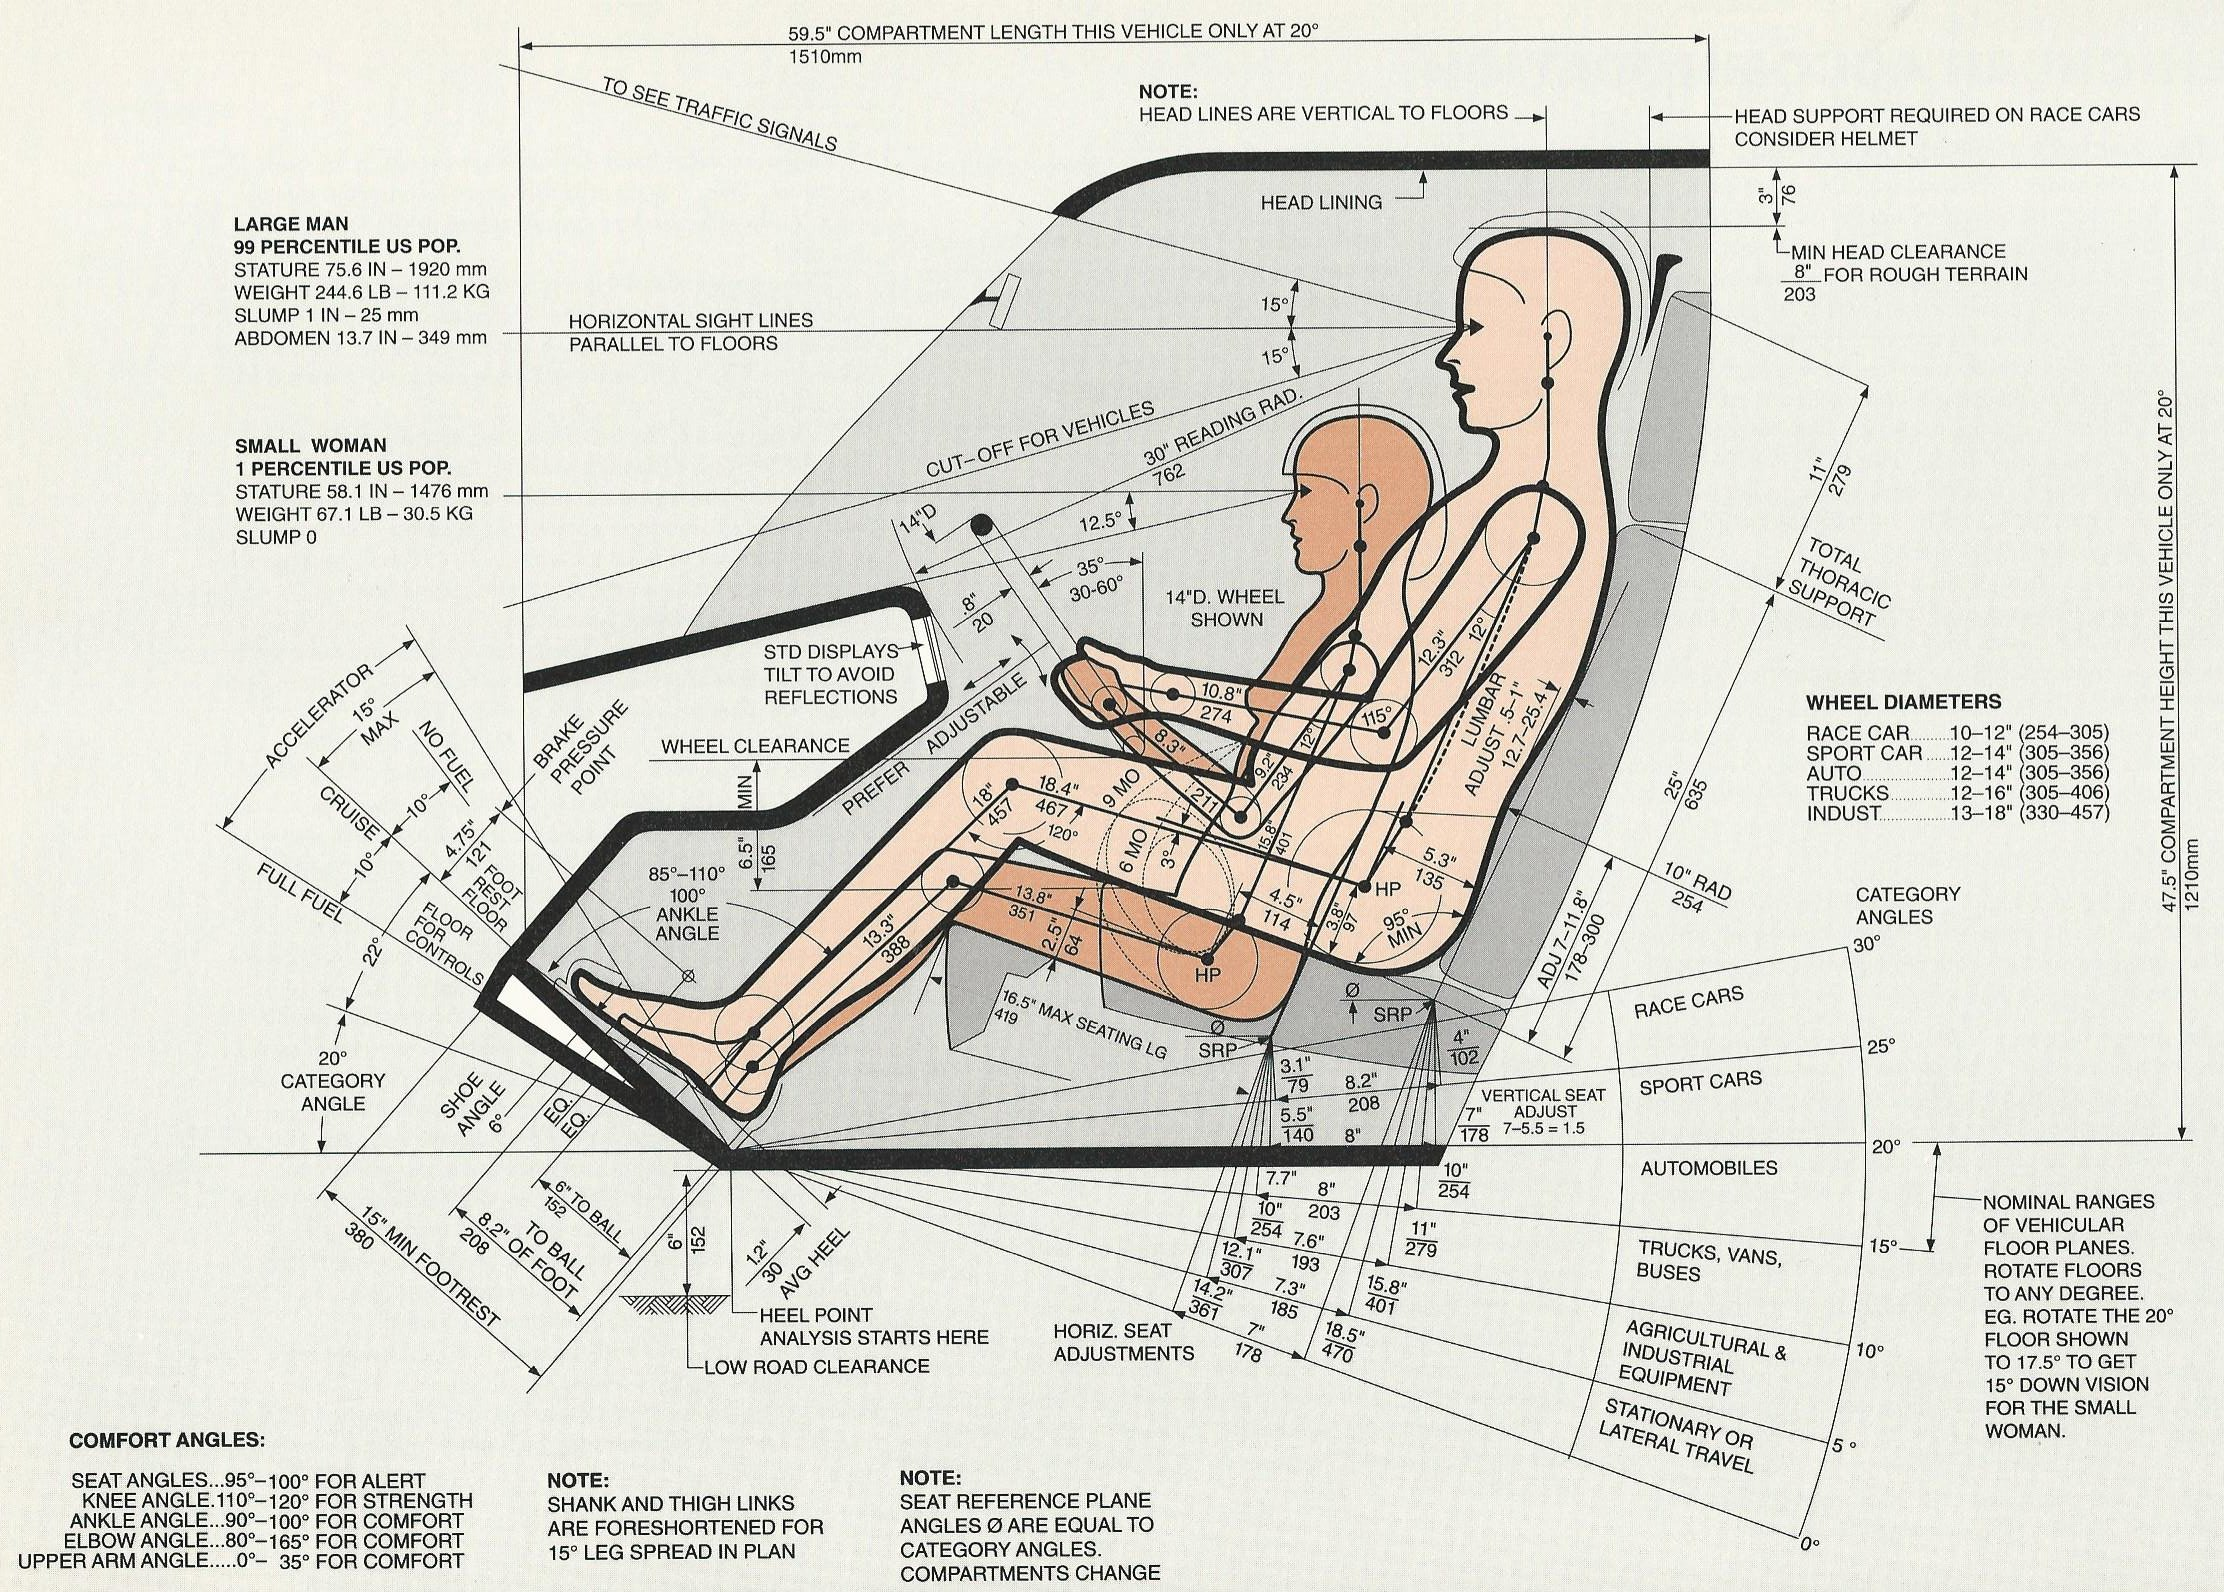 human factors in design of car Human factors and ergonomics (hf&e), also known as comfort design, functional design, and systems, is the practice of designing products, systems, or processes.